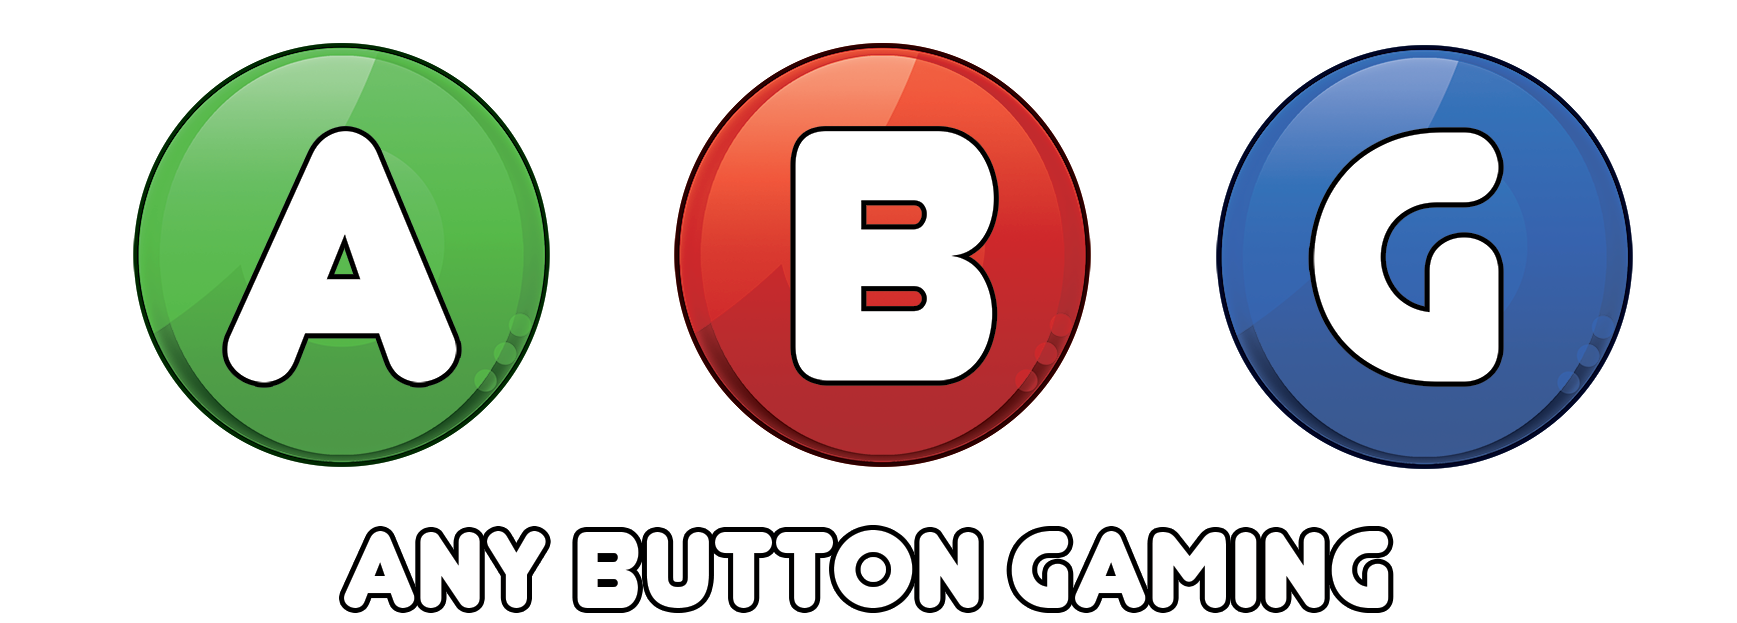 Reviews Any Button Gaming